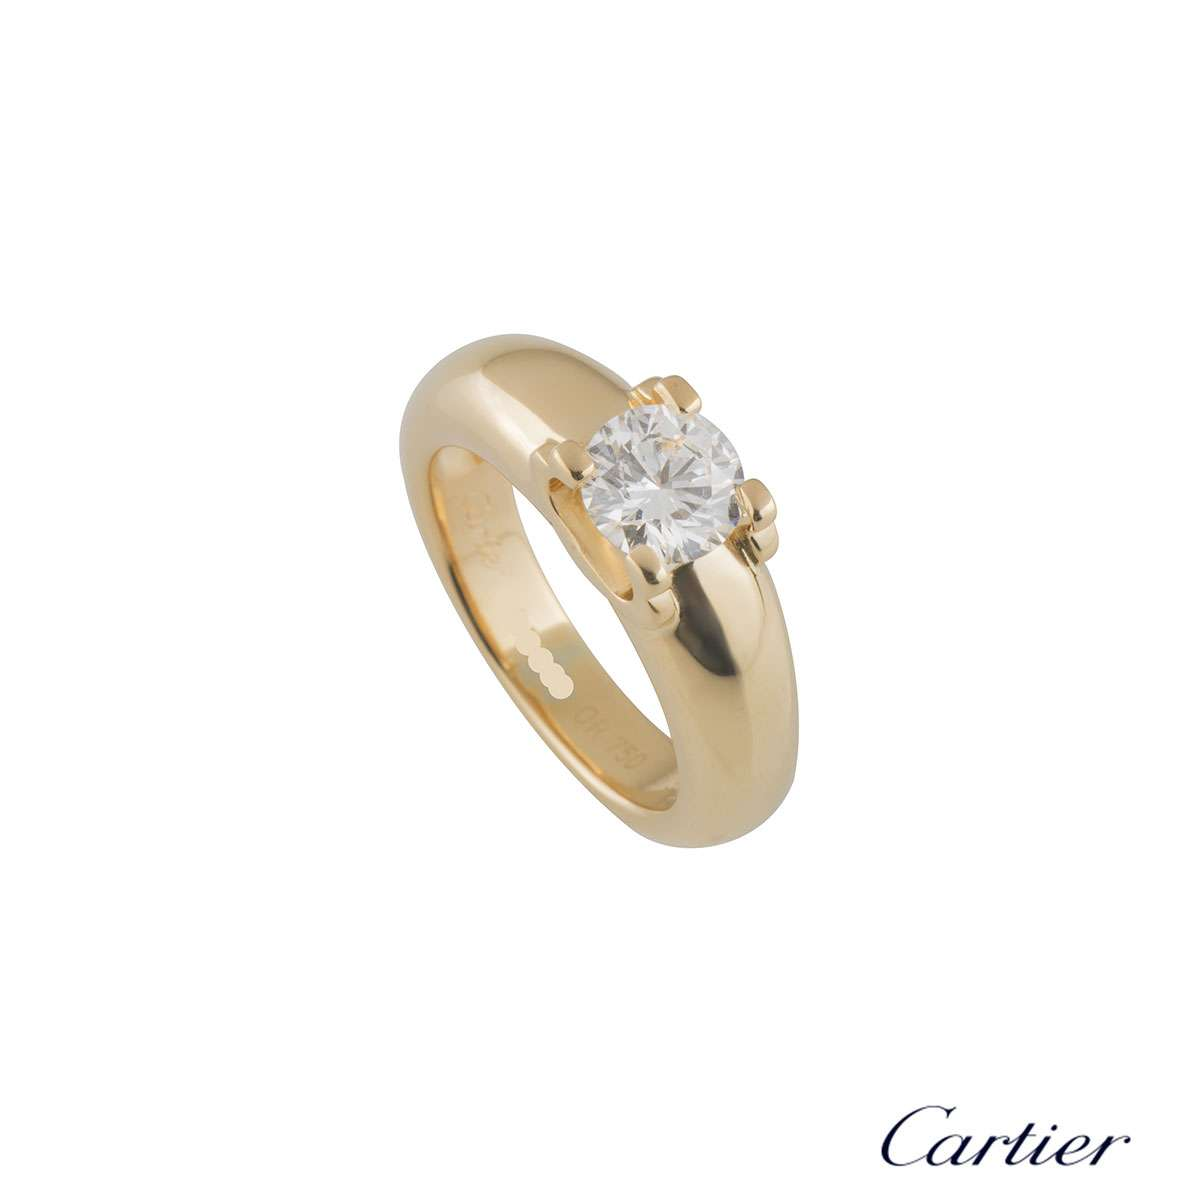 Yellow Gold C De Cartier Diamond Engagement Ring 1.01ct G/VVS2